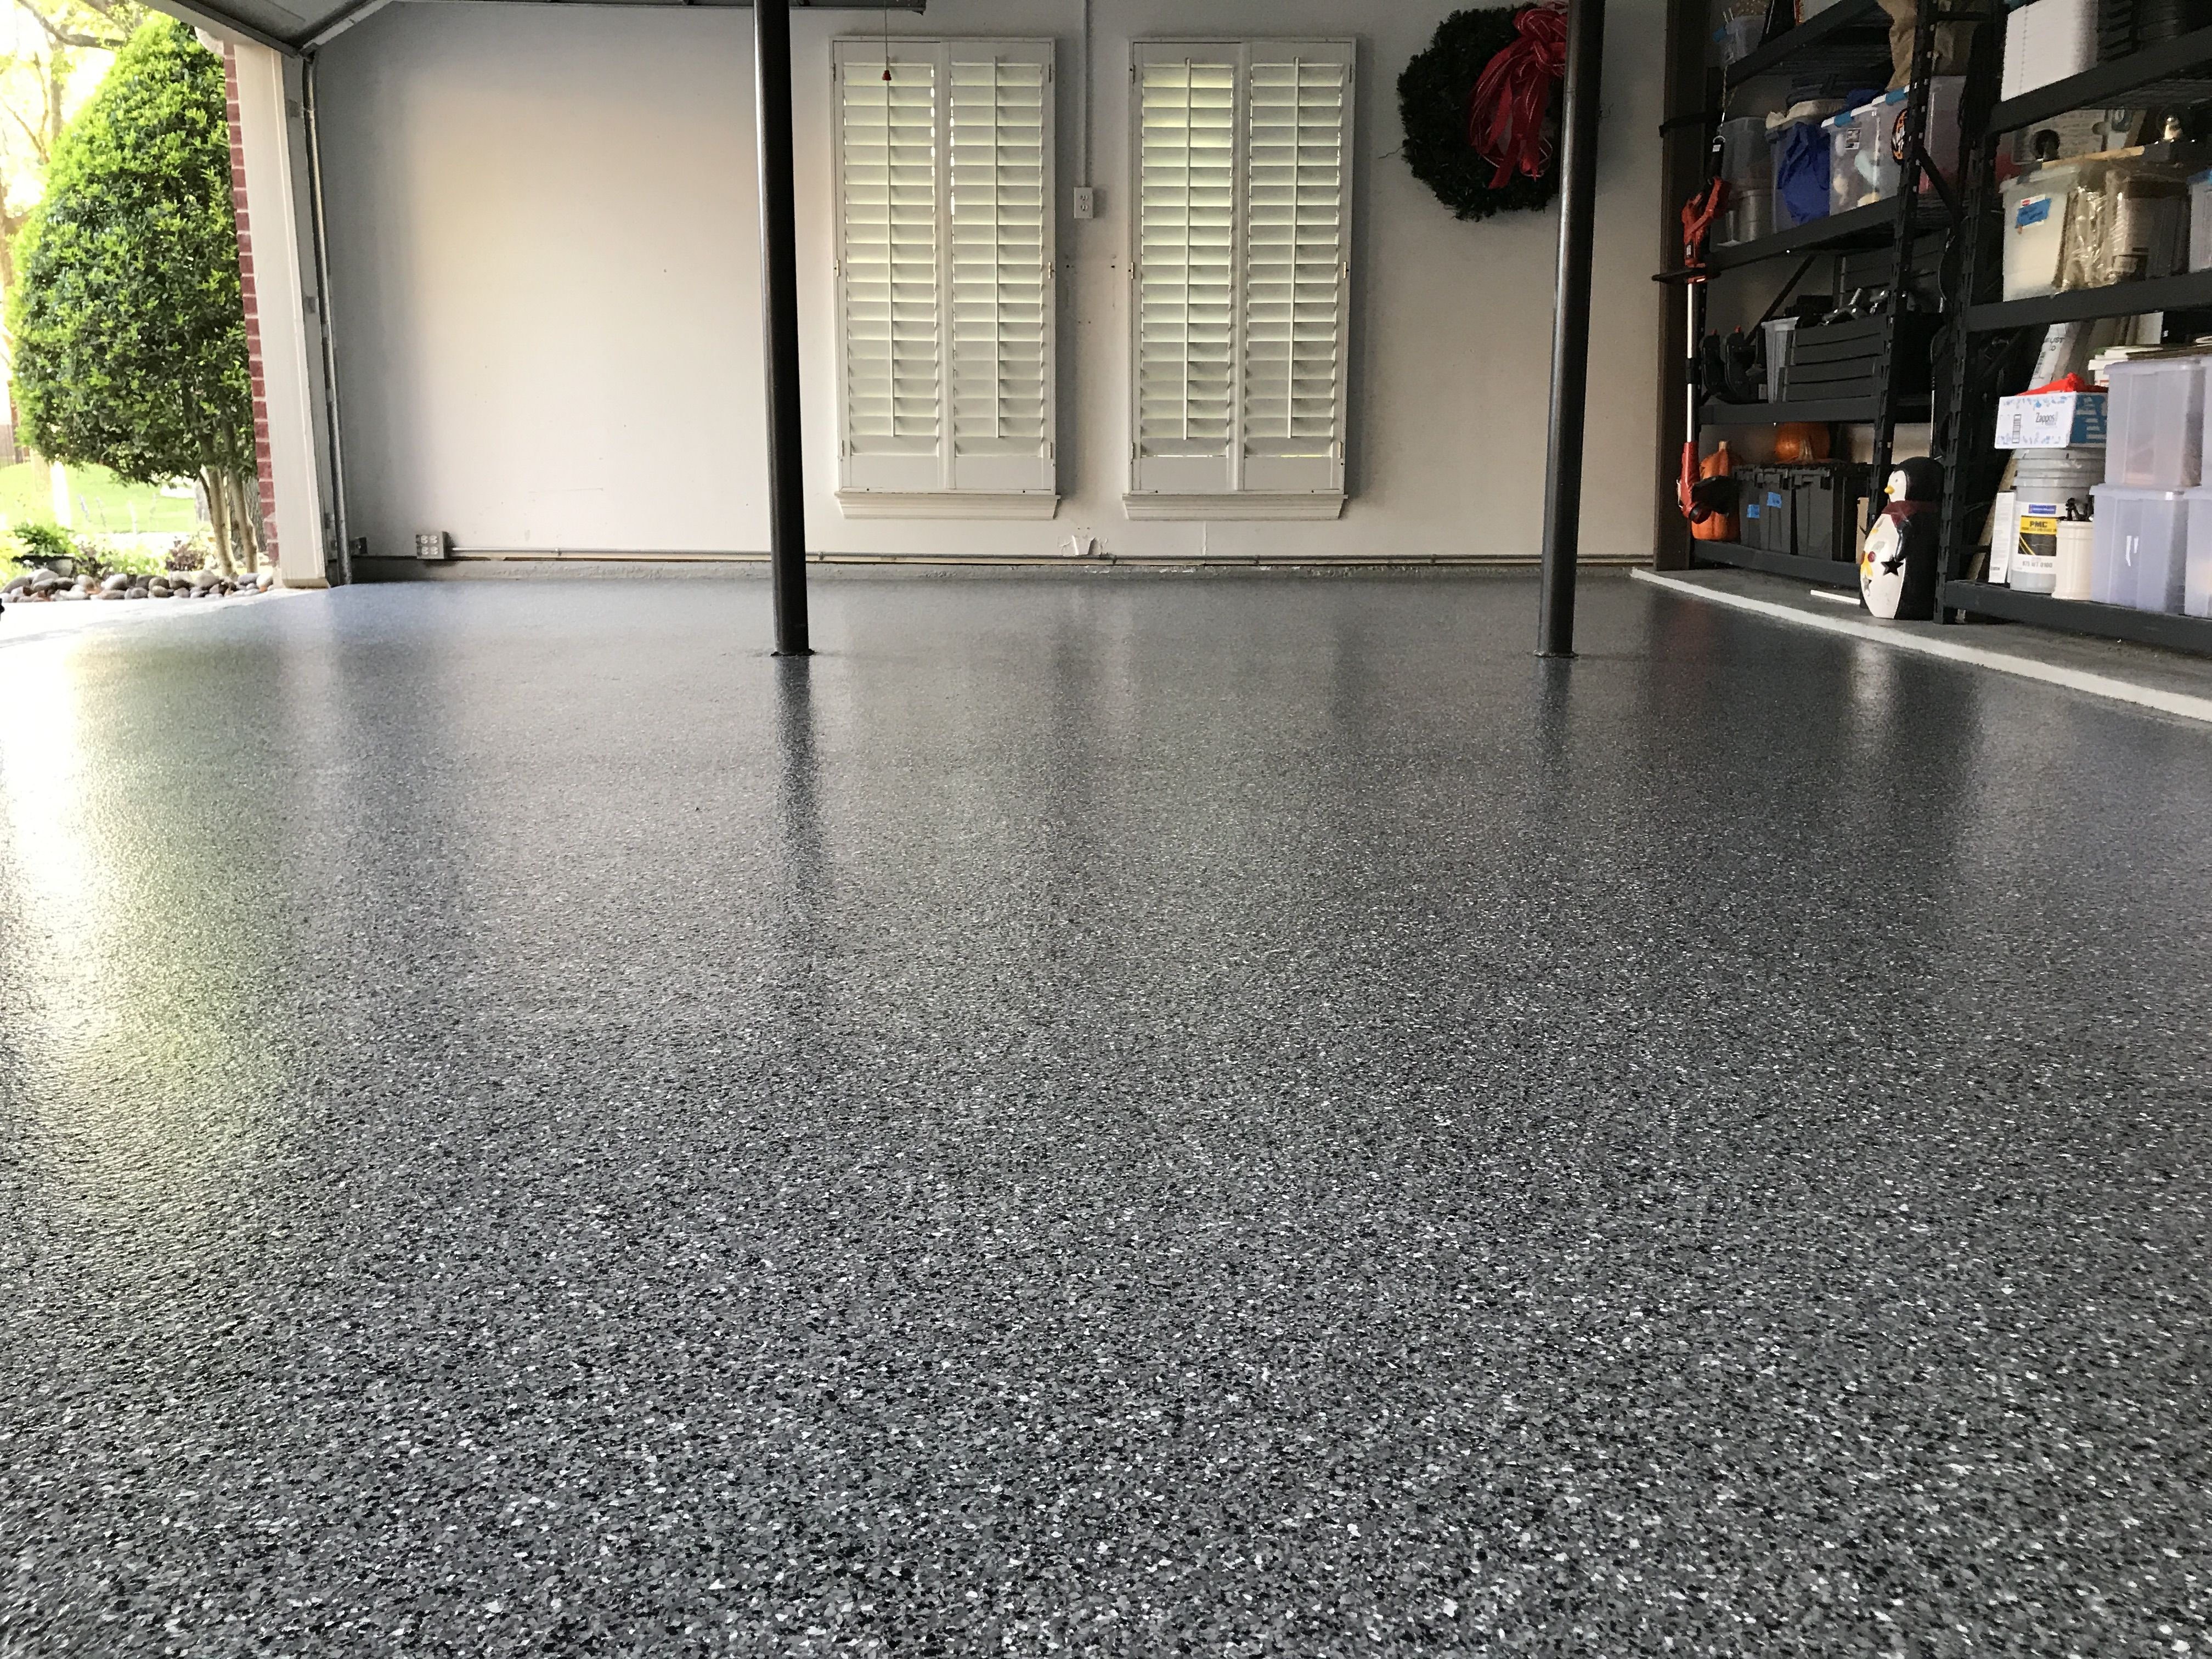 Classic Marble W White Done In Irving Texas Polyaspartic Floorpaint Garagefloor Flooring Contractor Garage Floor Garage Floor Coatings